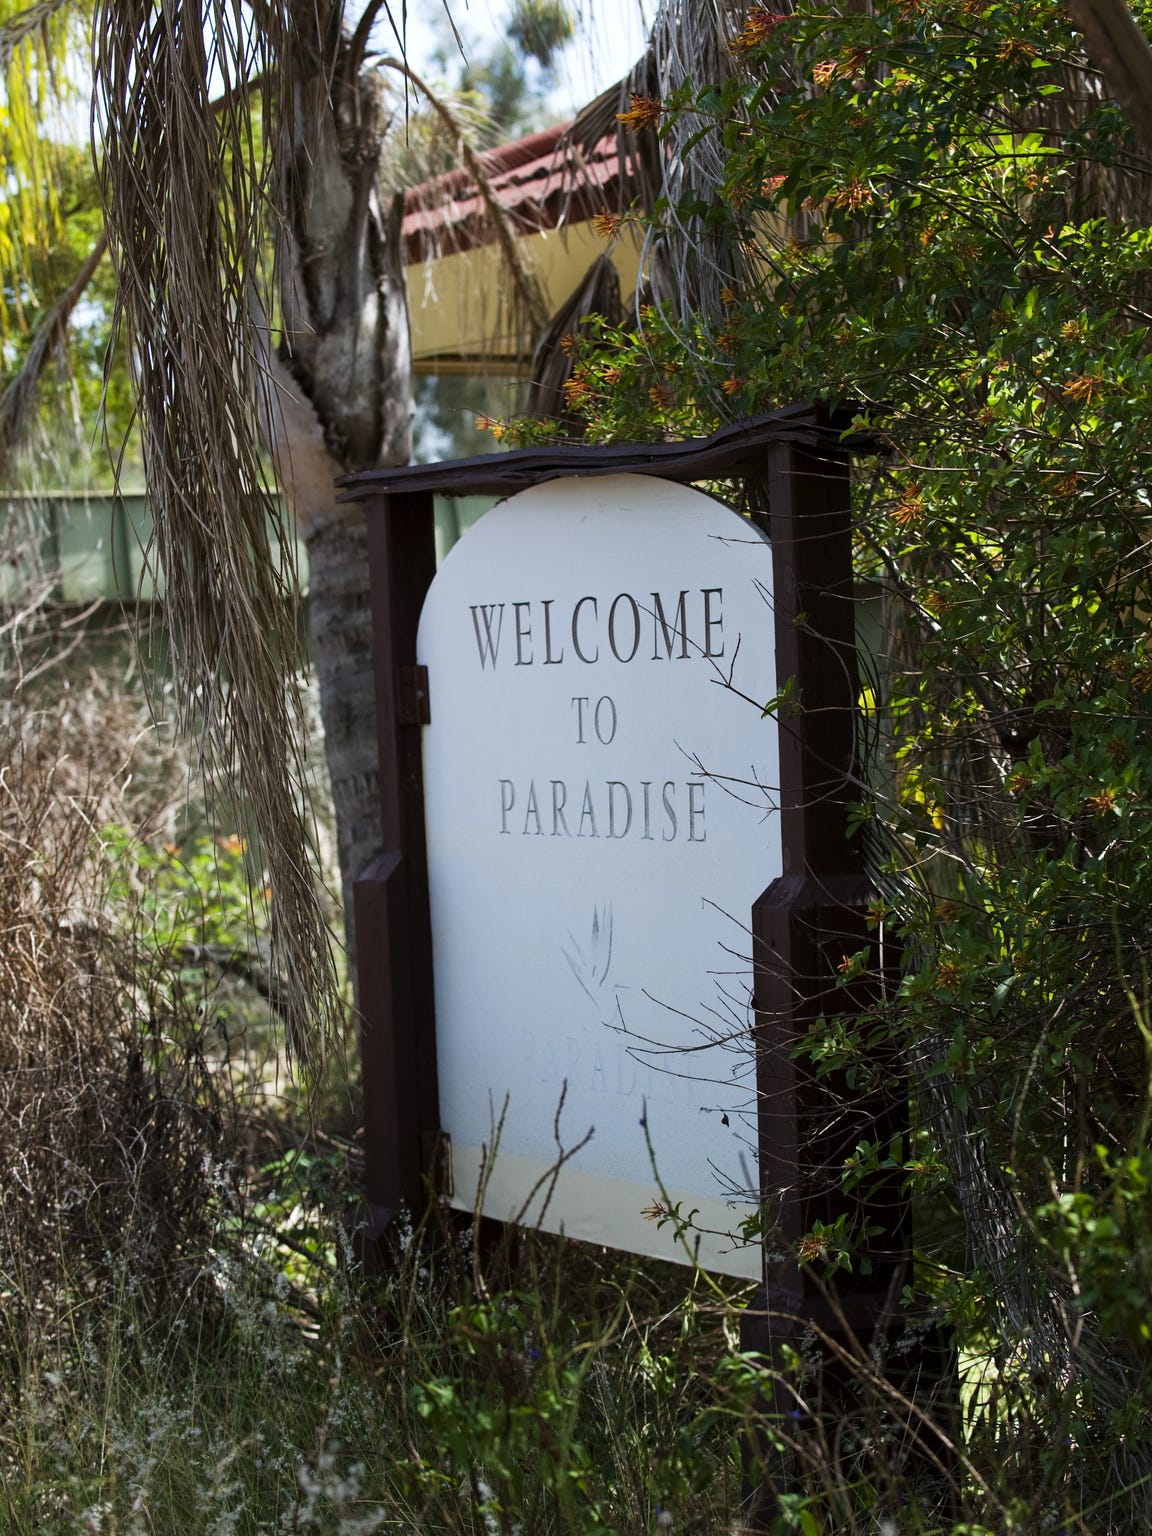 The welcome sign at Paradise Preserve in North Fort Myers stands welcoming no one. Paradise Preserve, formerly Lochmoor Country Club, has been closed for years due to foreclosure.